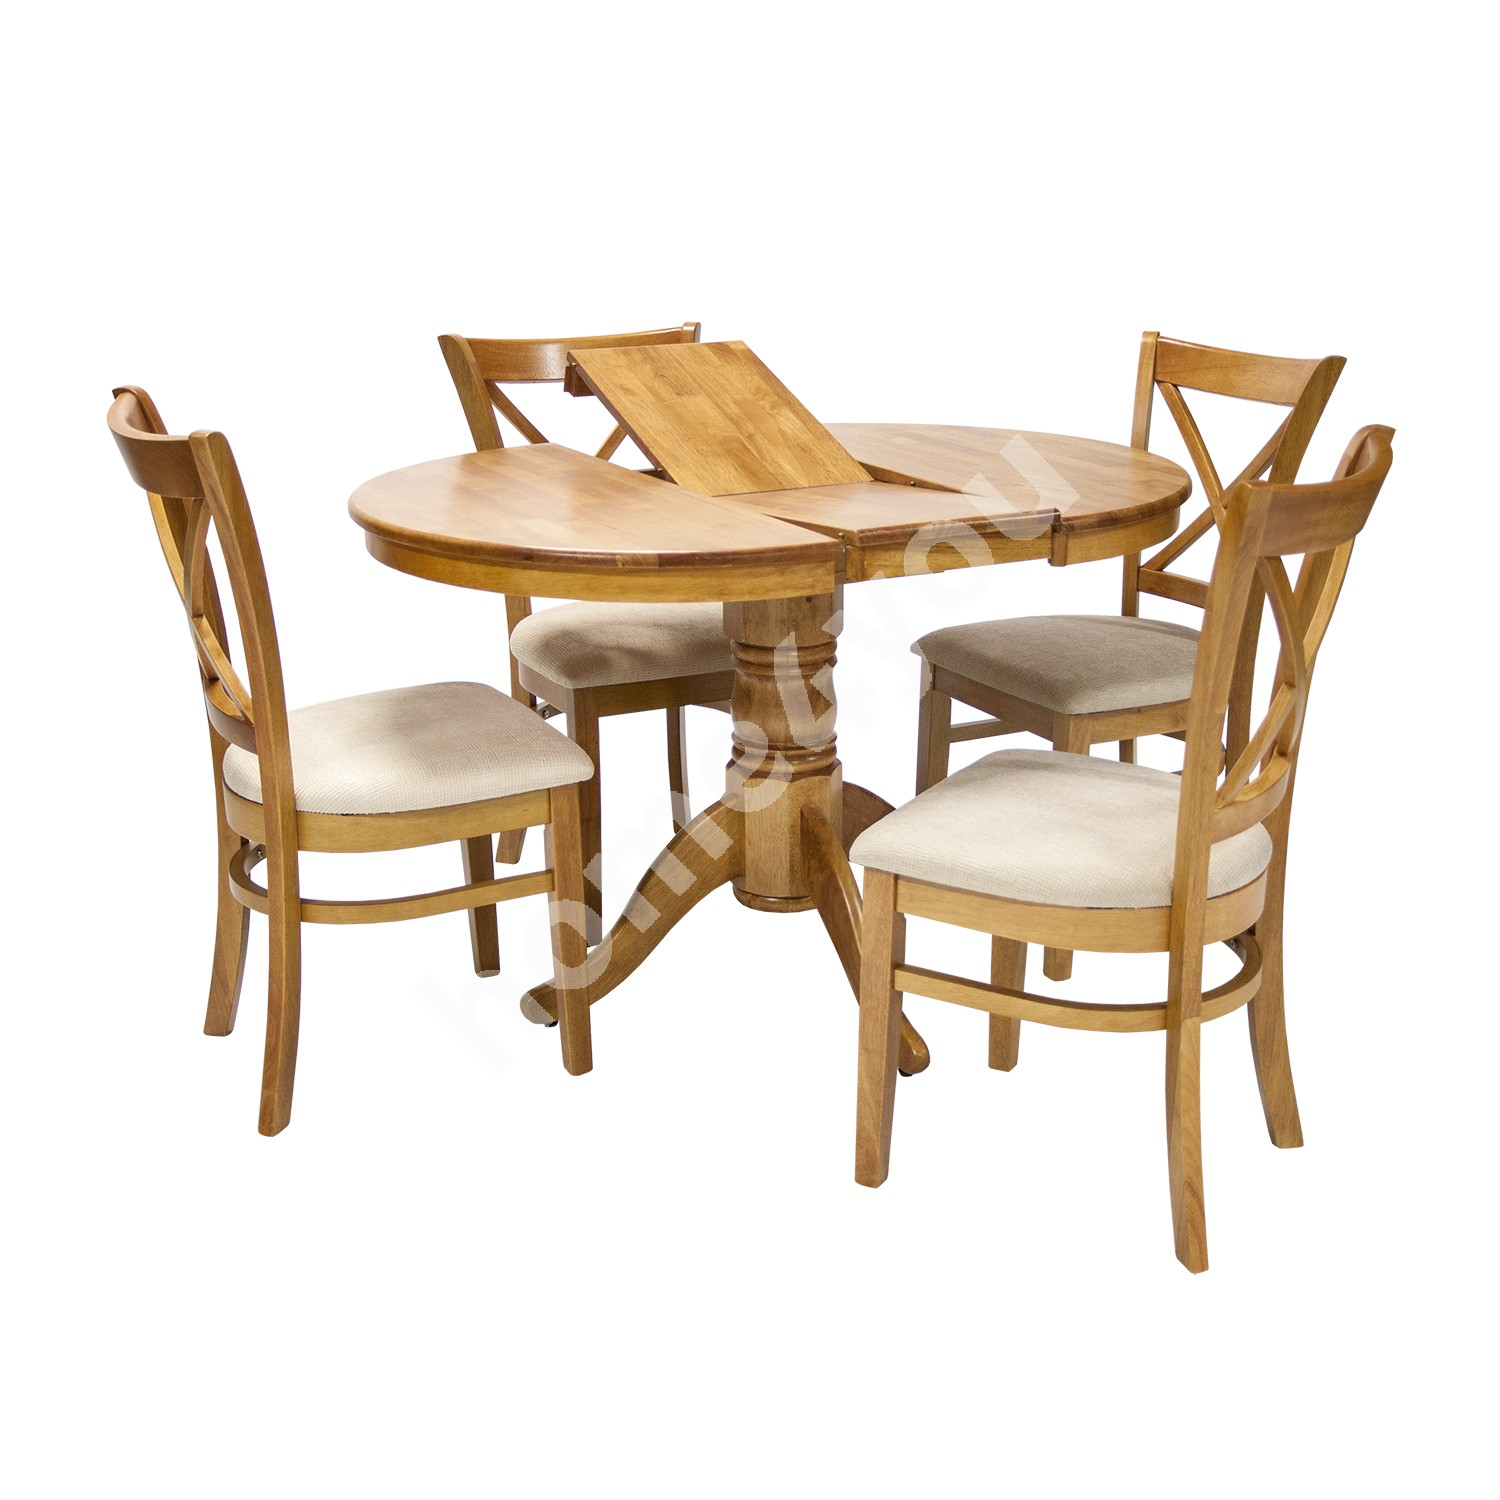 Dining set MIX & MATCH with 4-chairs (20838), D90+30xH74cm, wood: rubber wood, color: light oak, finish: lacquered